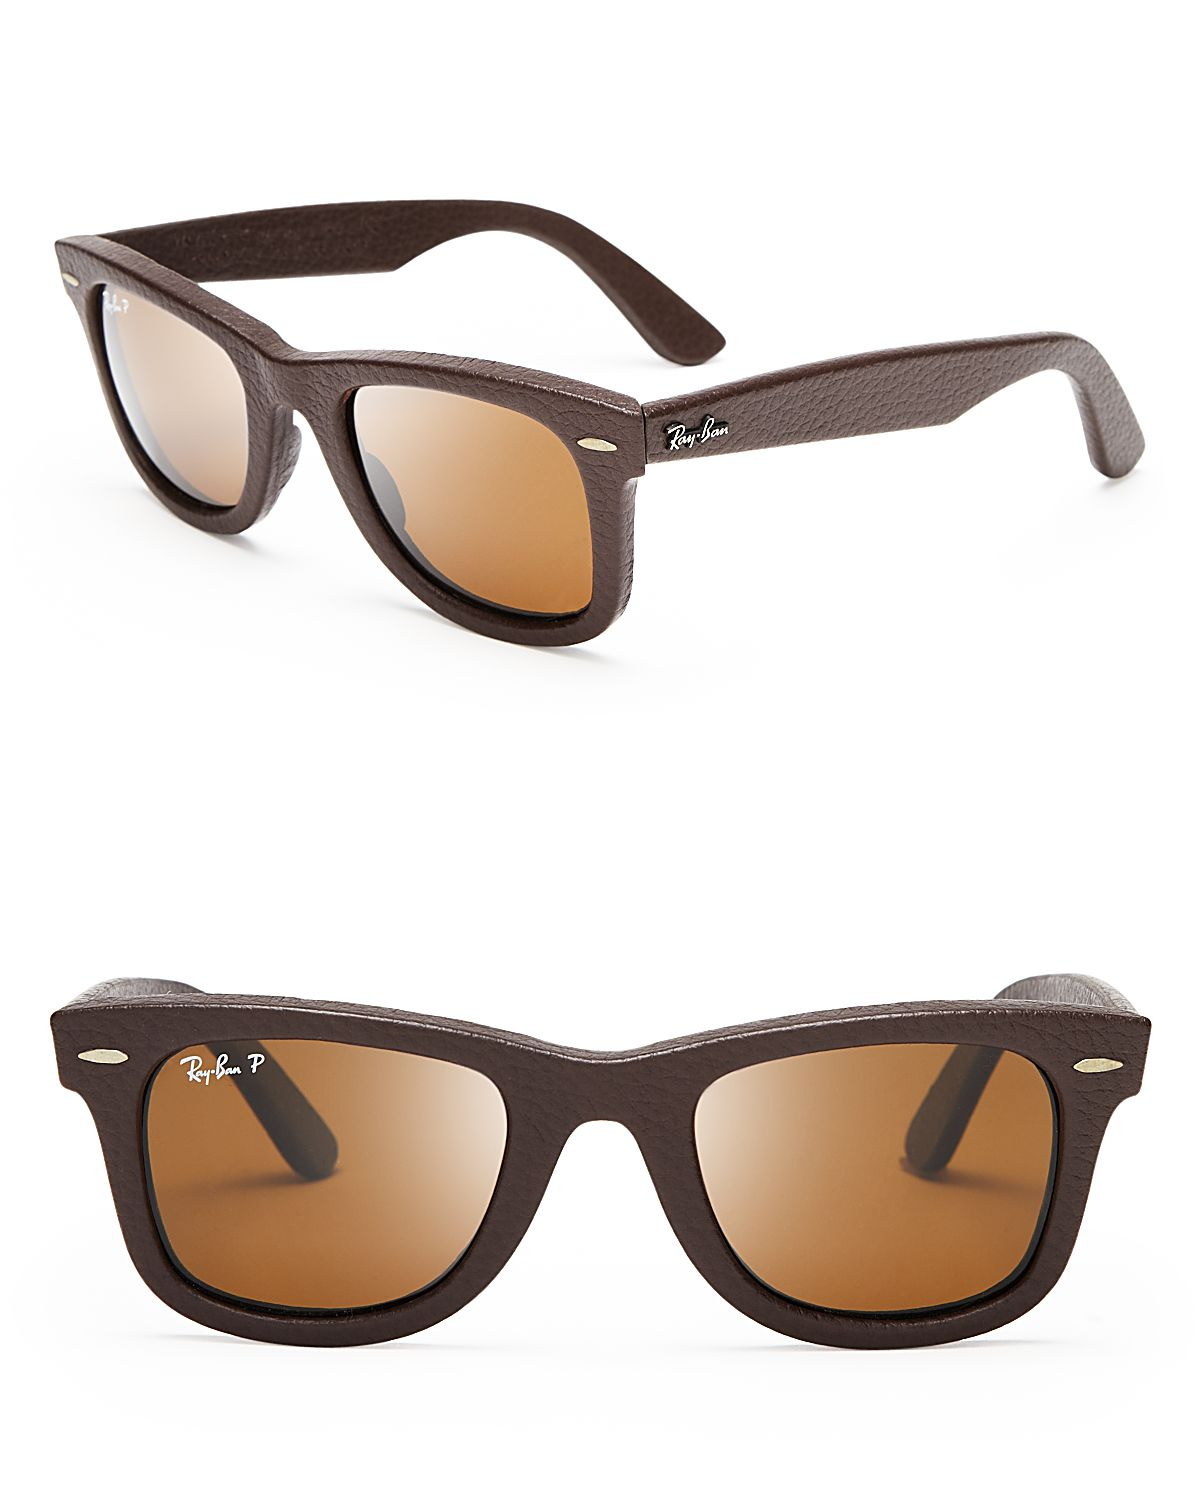 136495396d6 Ray-Ban Polarized Leather Wayfarer Sunglasses in Brown for Men - Lyst